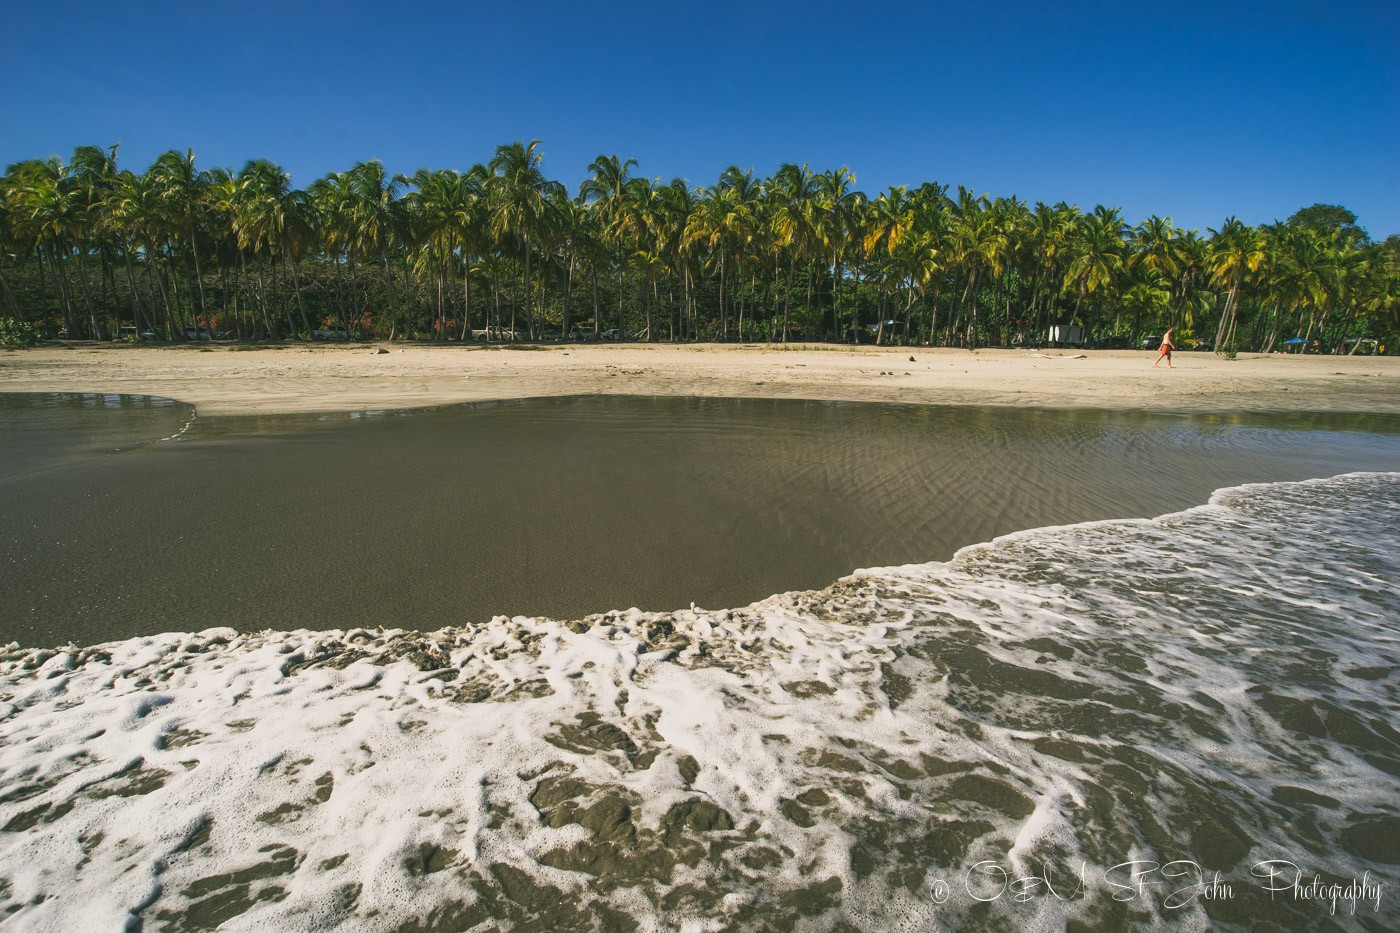 Costa Rica Travel Tips: Things to Know Before You Go